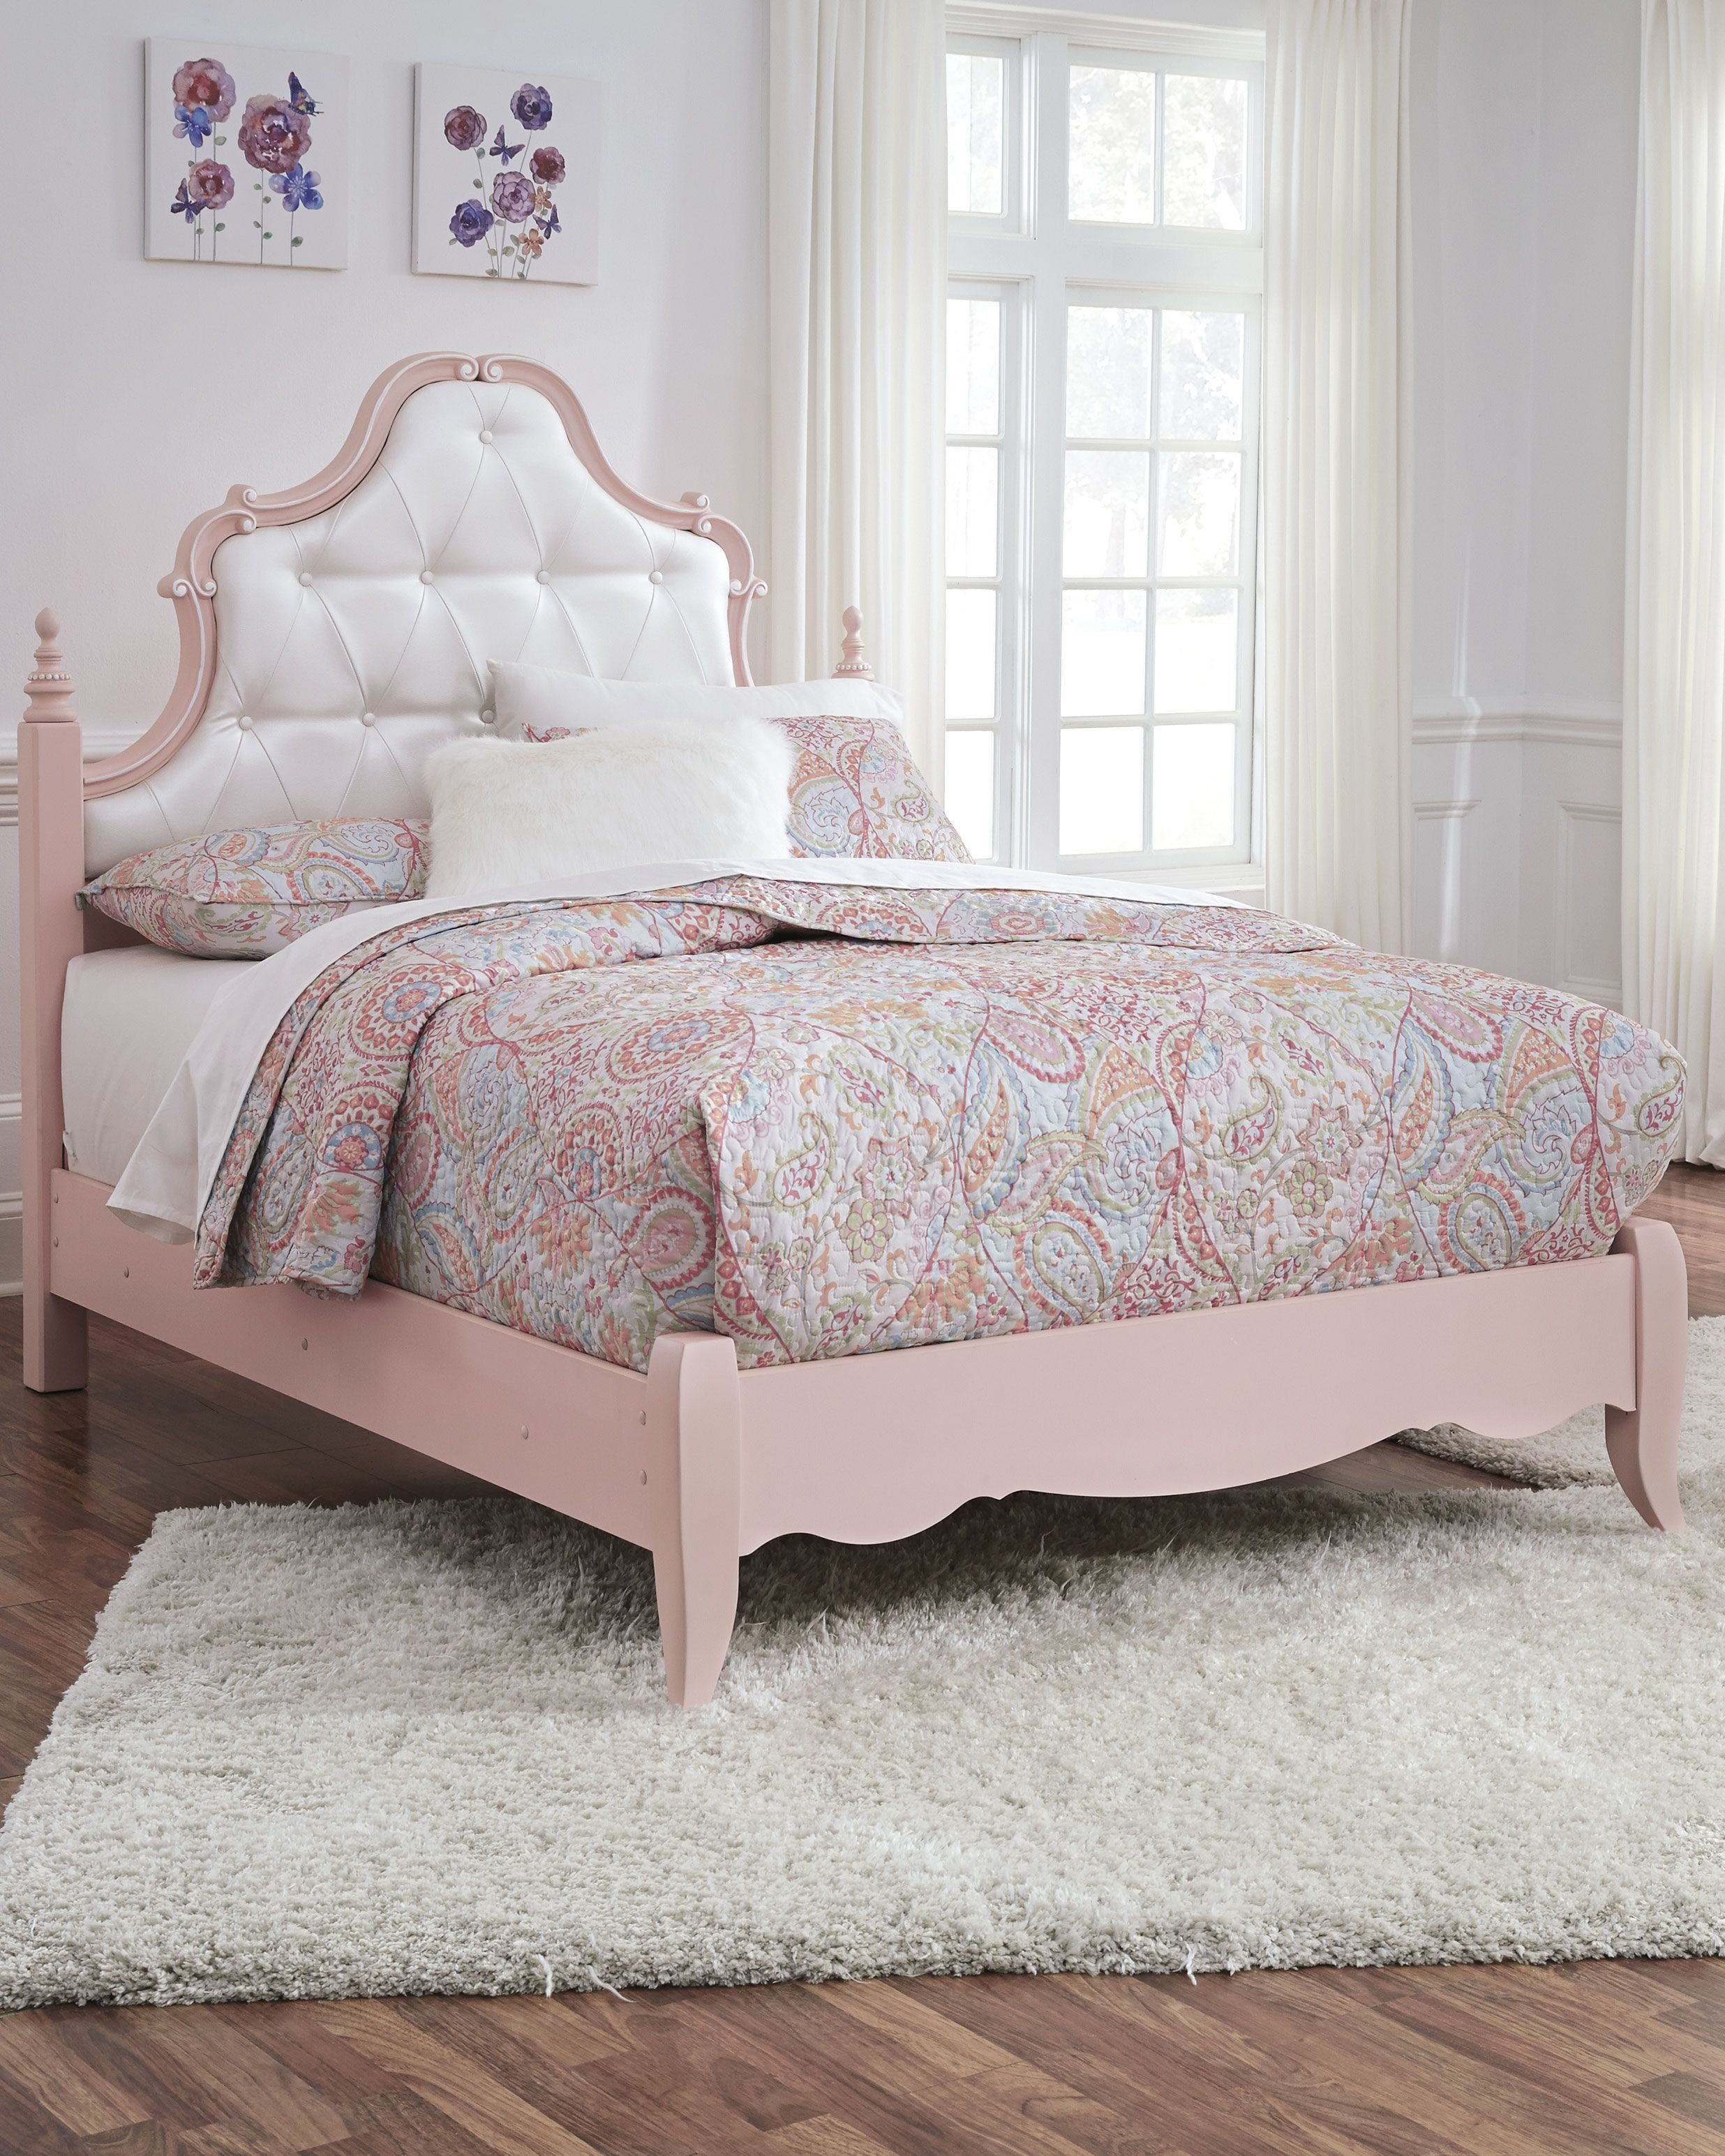 Laddi Full Upholstered Panel Bed, White/Pink Bed, Panel